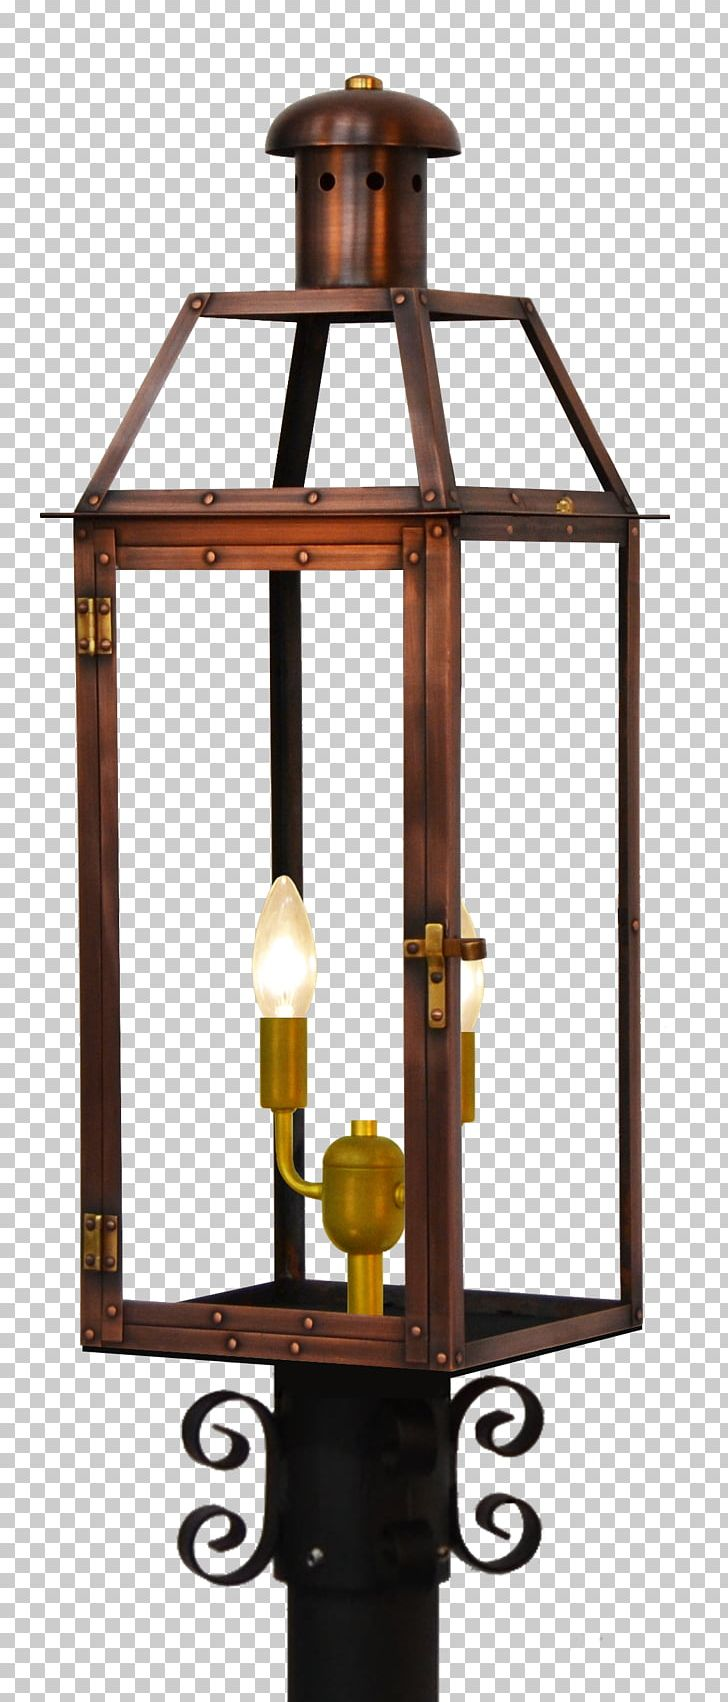 Lantern Light Fixture Windsor French Quarter PNG, Clipart.